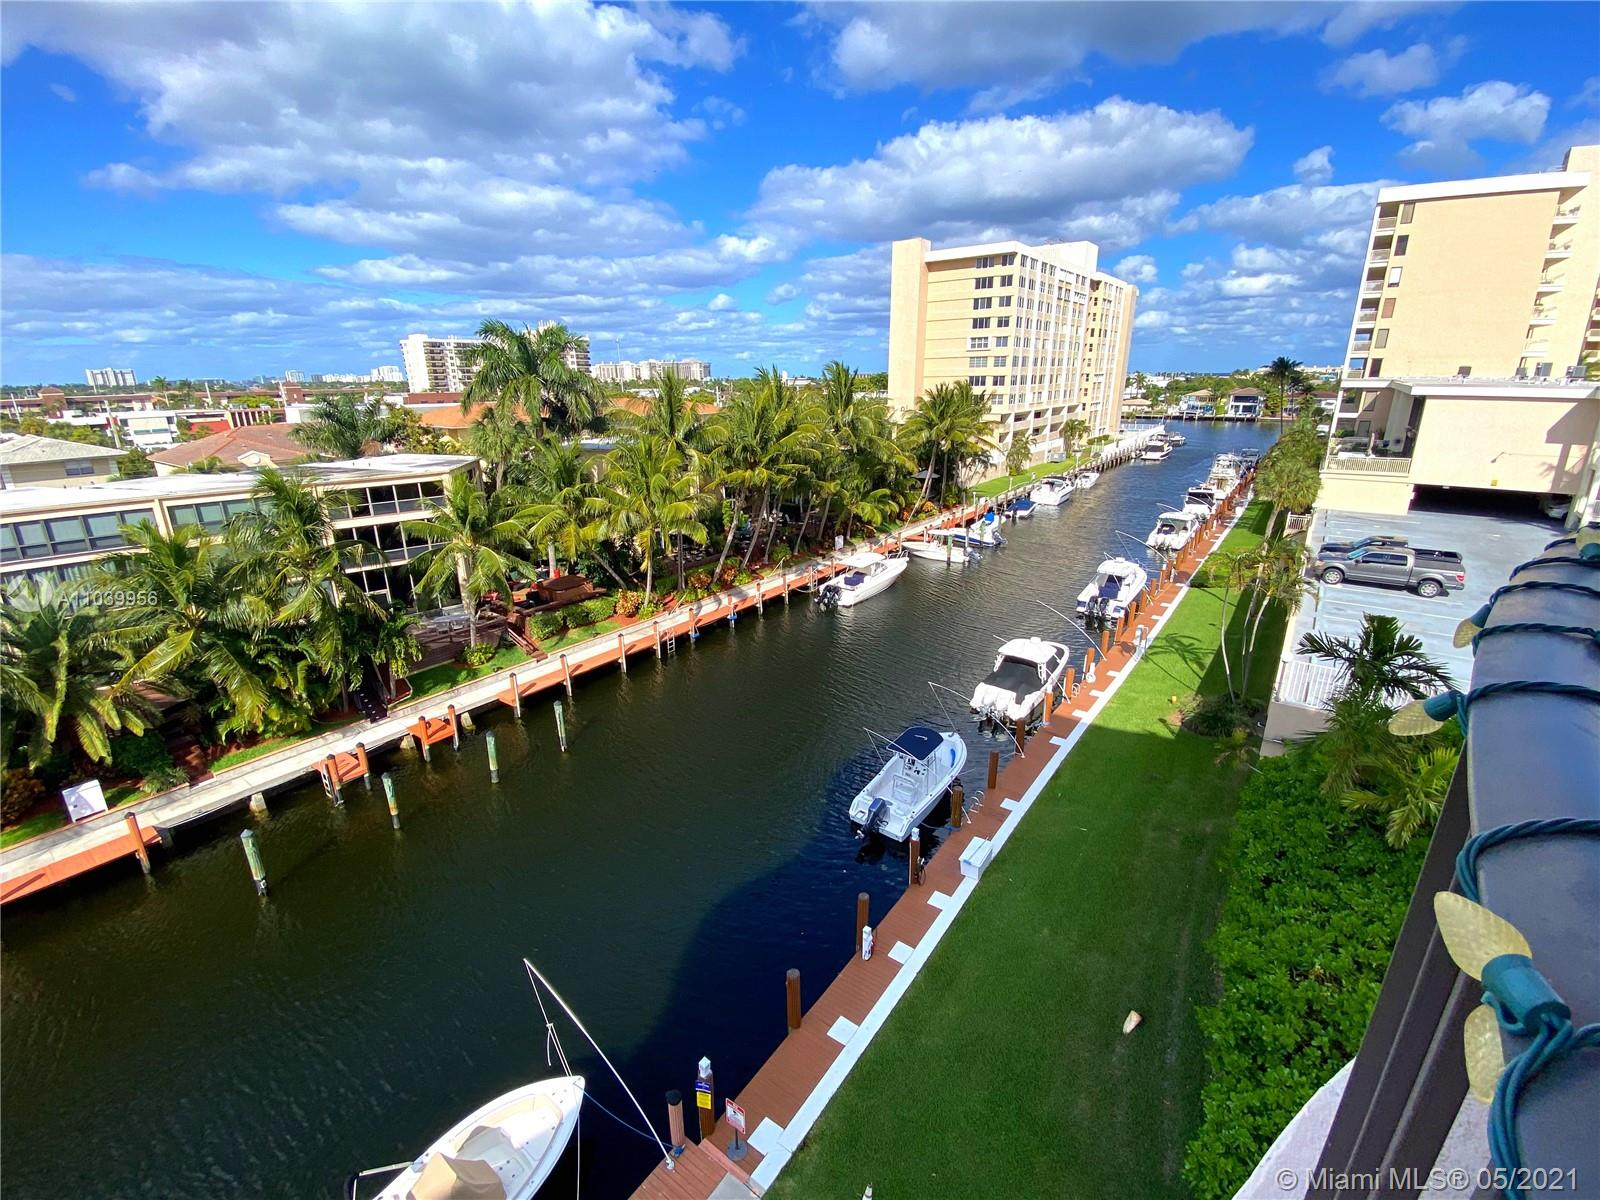 Enjoy your morning coffee, Sunrise, boat show, ocean view and breeze in hot weather from your private balcony with direct canal view. Corner unit! With extra east windows in each bedroom and patio in front of the unit. Coral Ridge Club quiet and is safe neighborhood. Garage parking with storage plus plenty of guest parking. Open floor plan with Extra Large living room and 2 walking closets, updated master bathroom, updated ceilings and walls, kitchen appliances partially changed in 2021, washer and dryer combo machine in unit, impact/ anti-hurricane windows, wood blinds . Heated pool and recreation room with kitchen. Paradise for boaters! No fix bridges, you can buy or rent boat dock when available. Guest boat dock 55', could be used by owners or your guests.